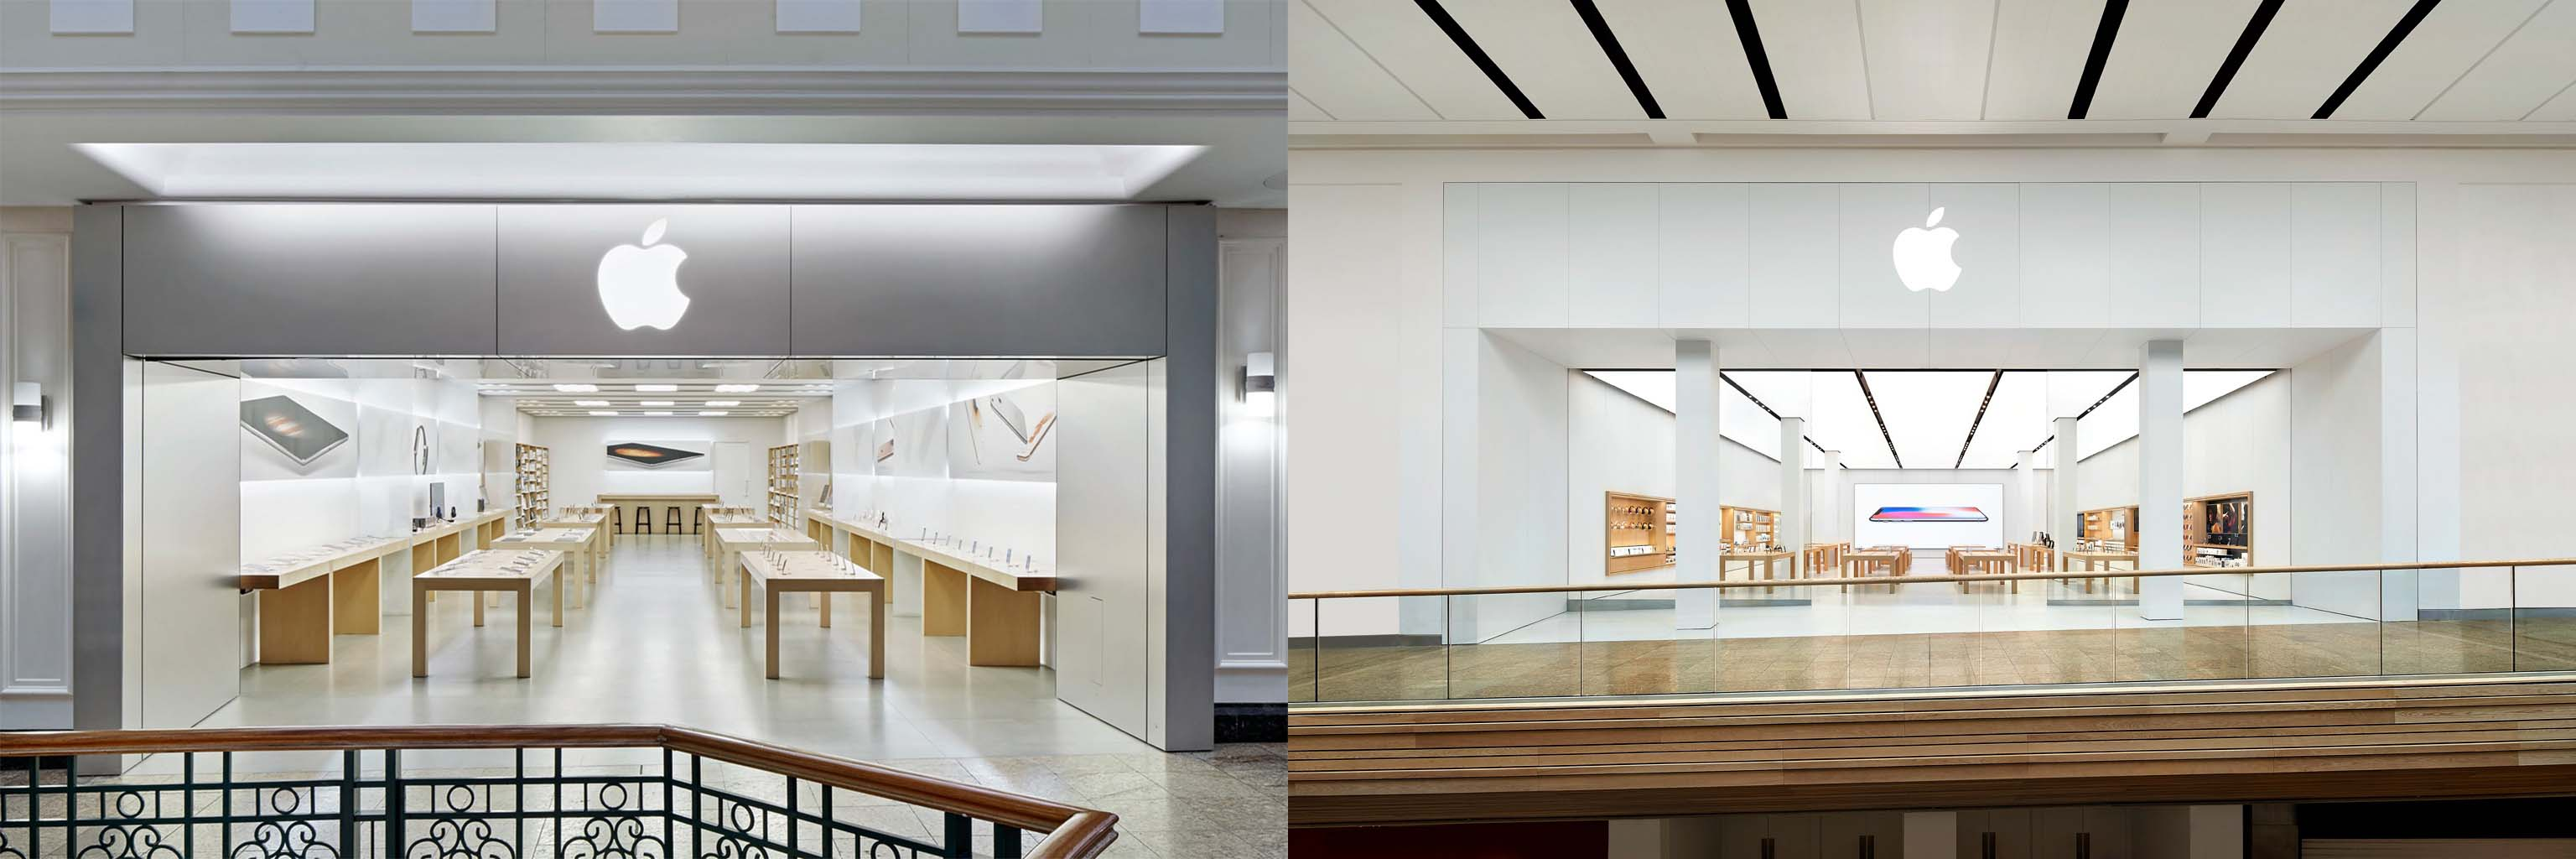 Ceiling Design Retail Apple Retail In 2017 A Look At Every Store Opened Closed